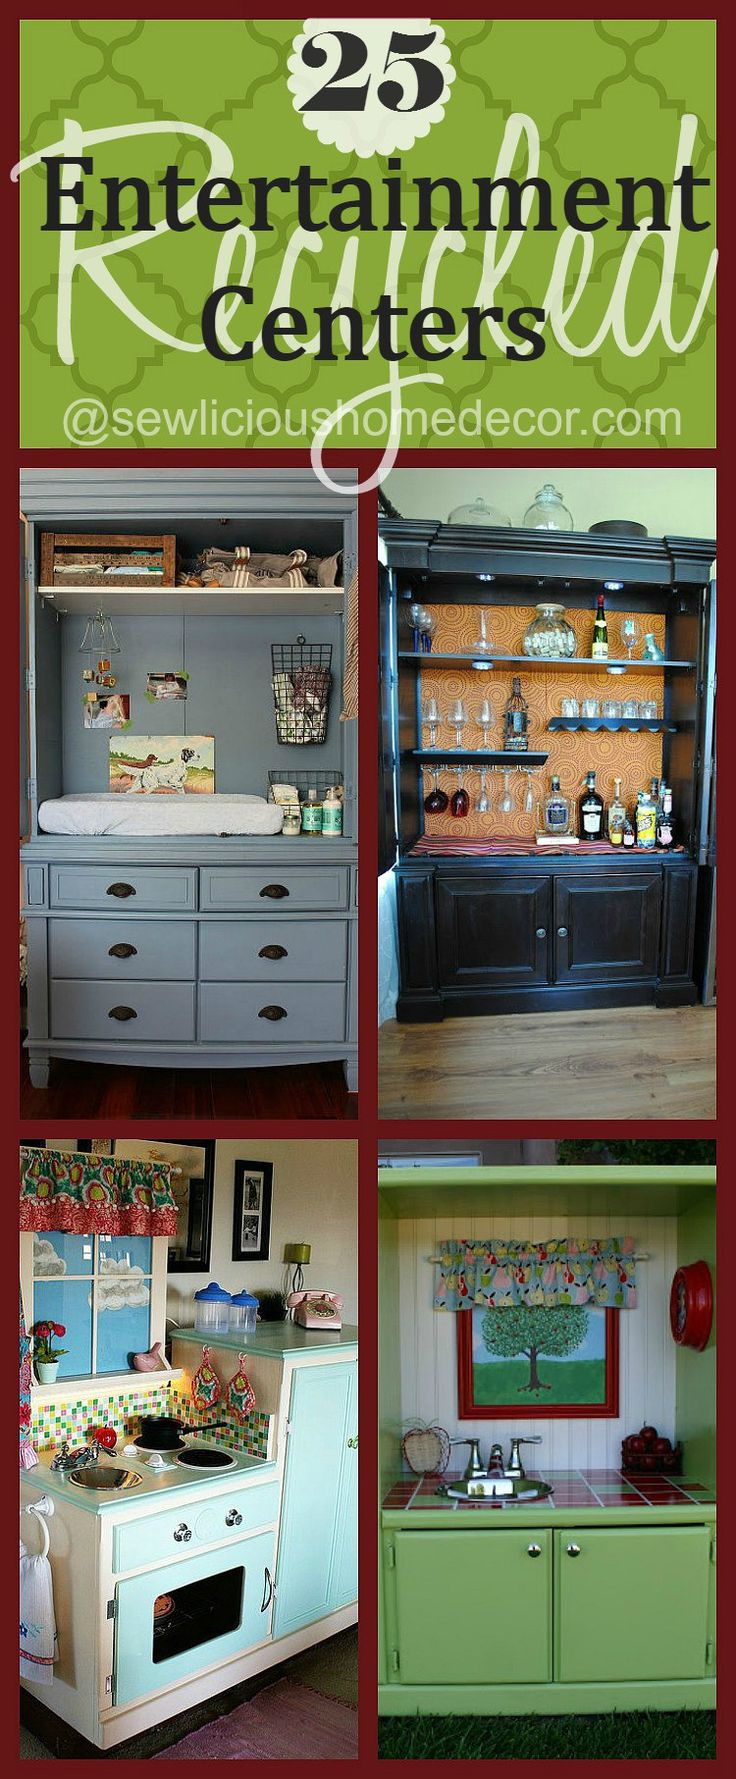 127 best images about upcycled entertainment centers on pinterest see best ideas about tv. Black Bedroom Furniture Sets. Home Design Ideas